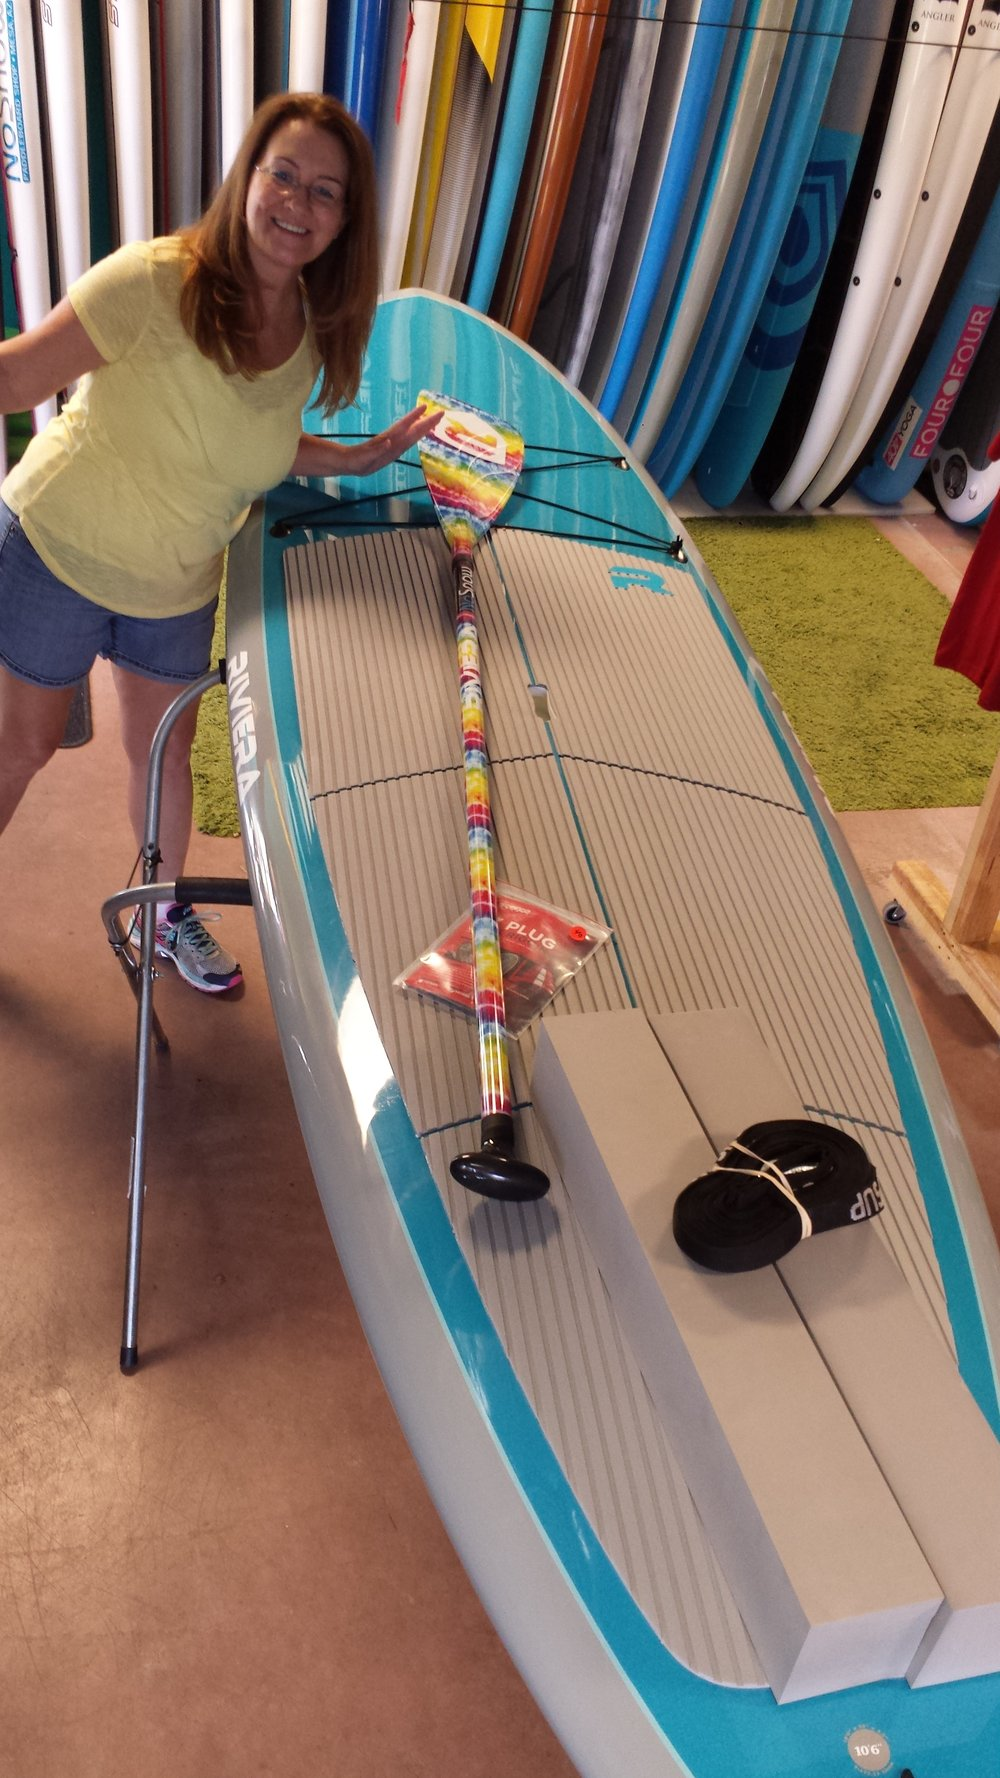 WOA member, Elise, with her new SUP!